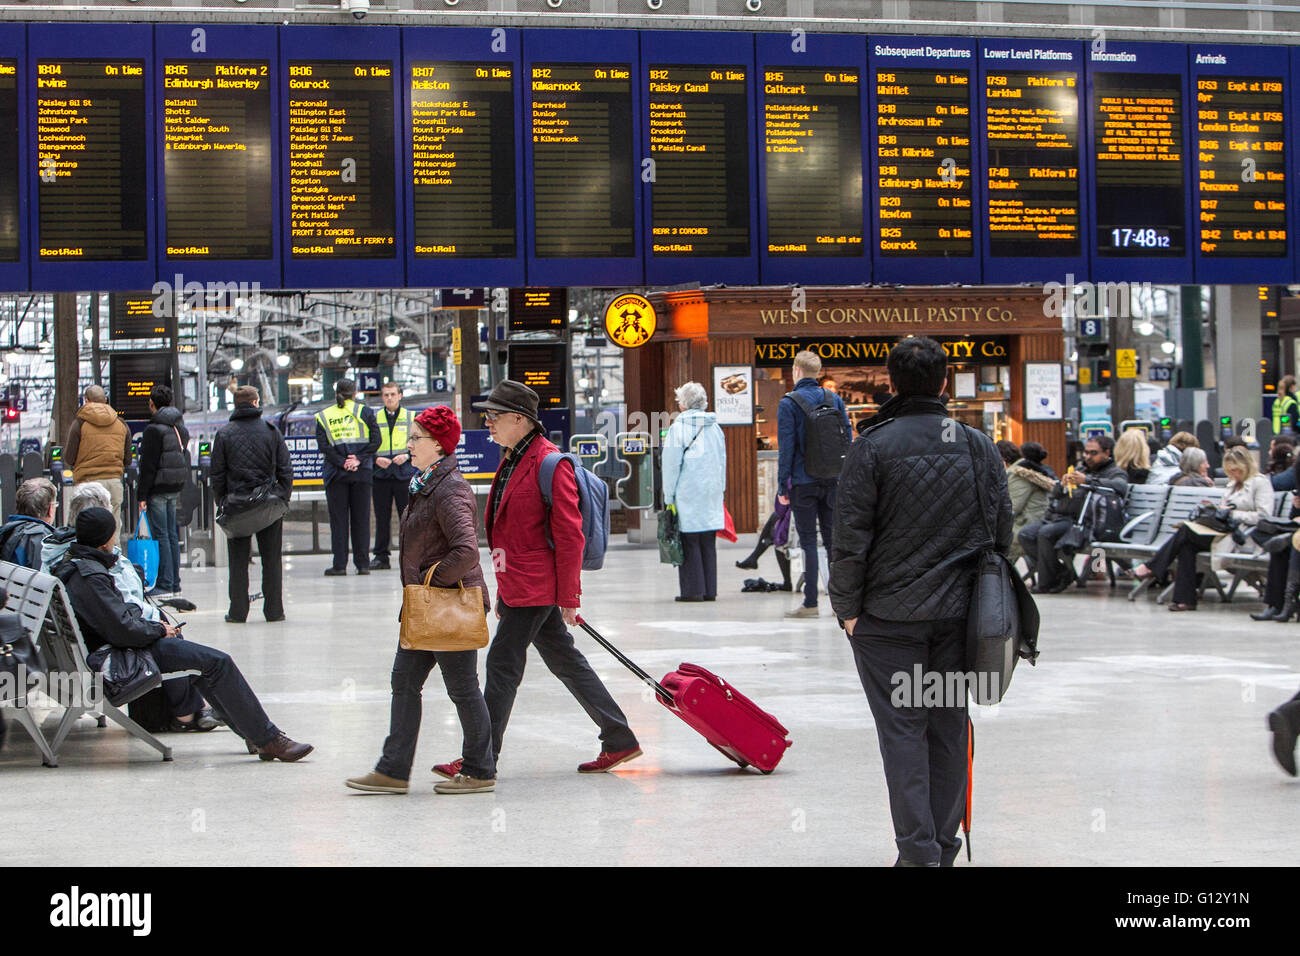 Commuters at Central Station Glasgow with destination board in background - Stock Image